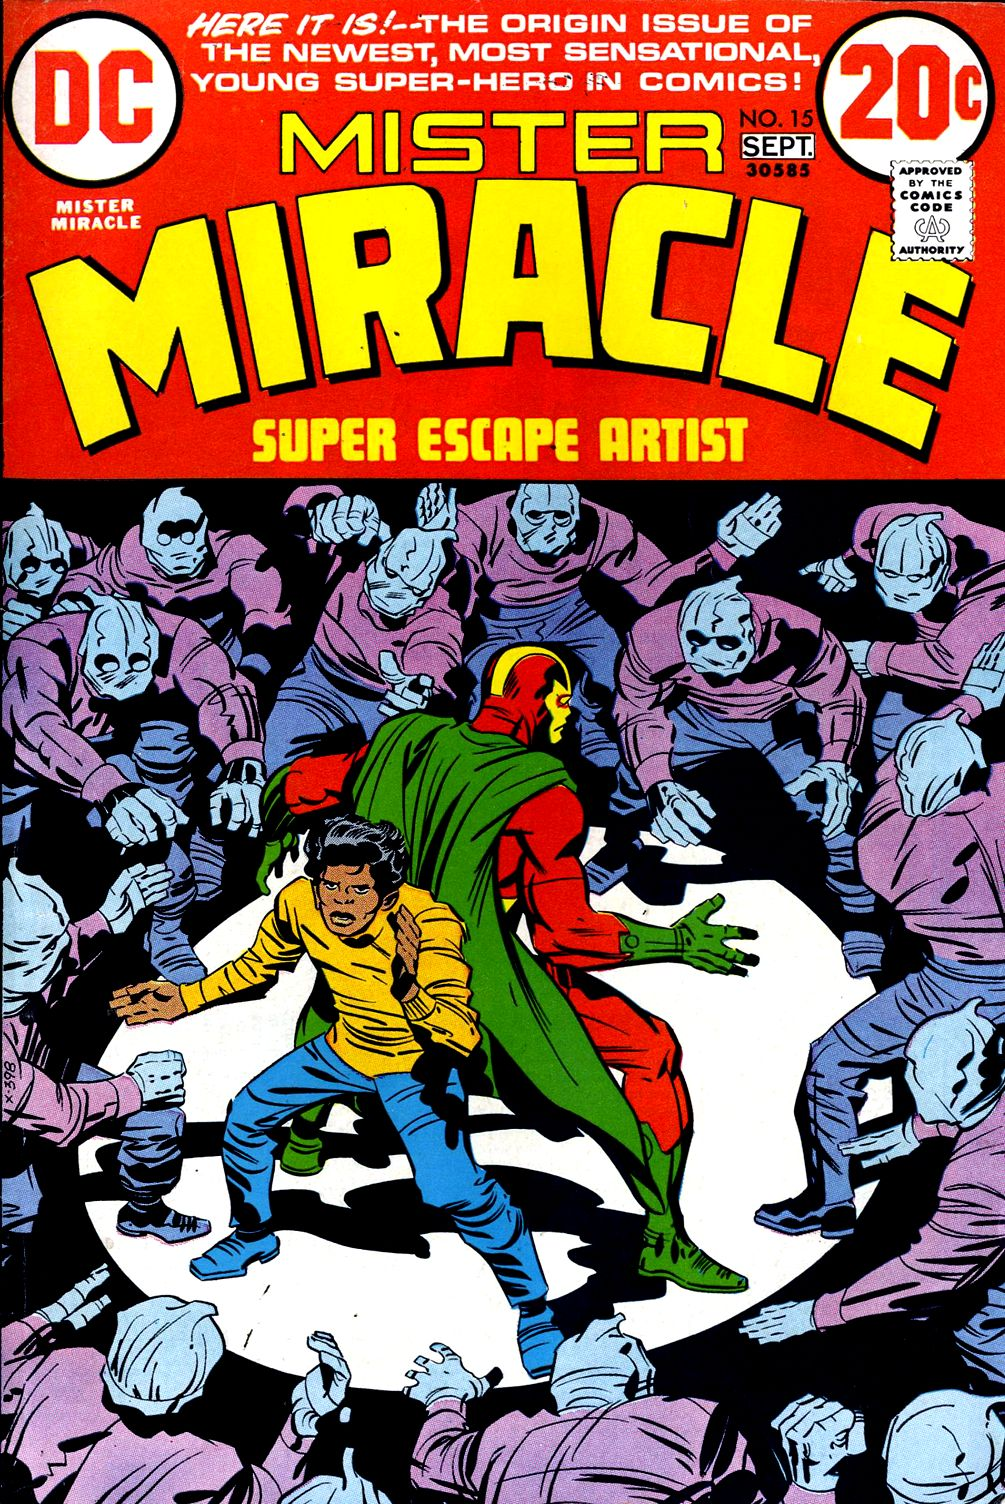 Mister Miracle (1971) issue 15 - Page 1